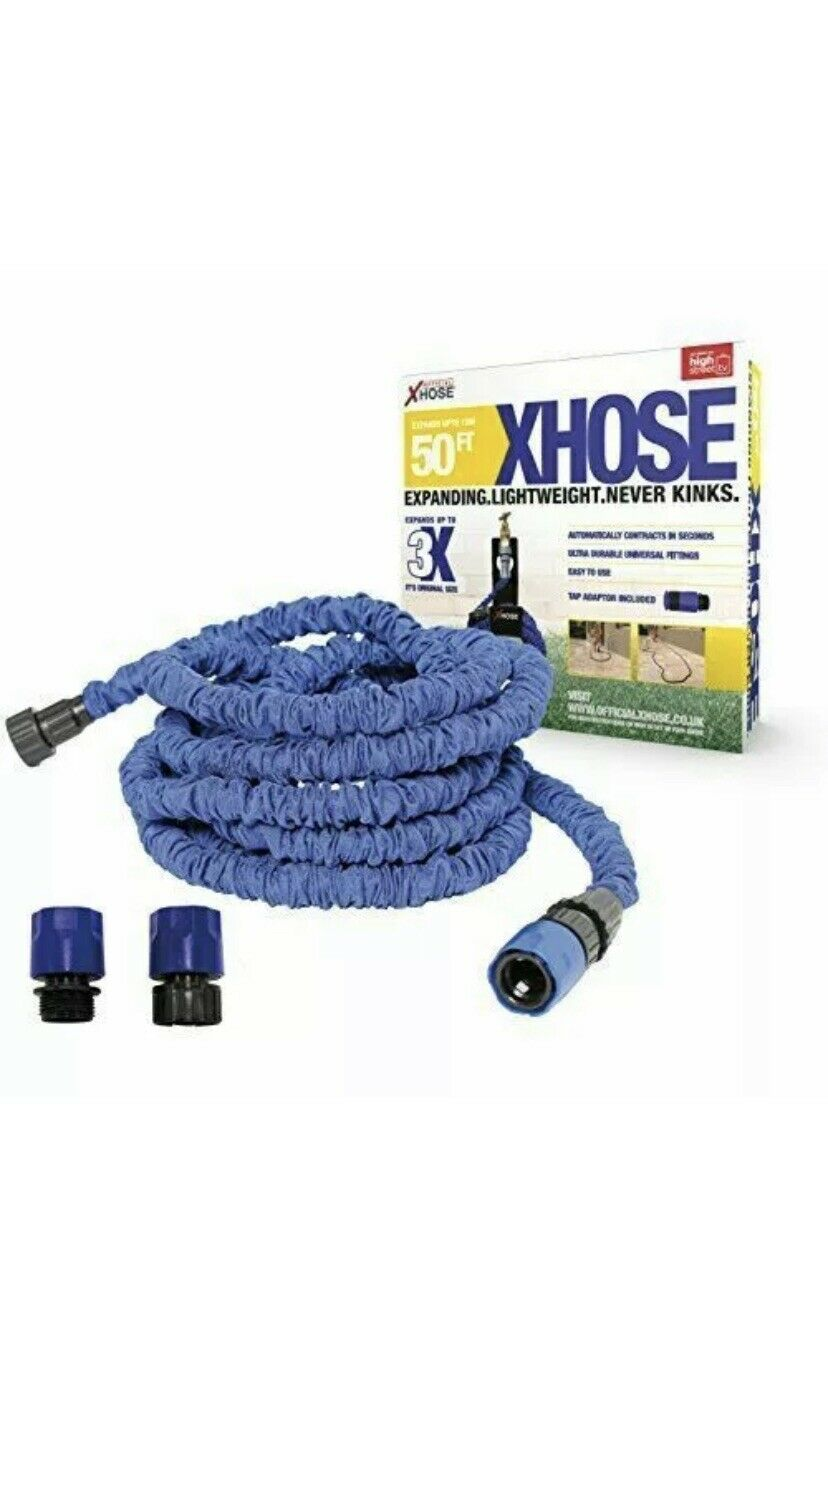 B&Q Xhose 50ft New Other Tap Adapter Included Blue